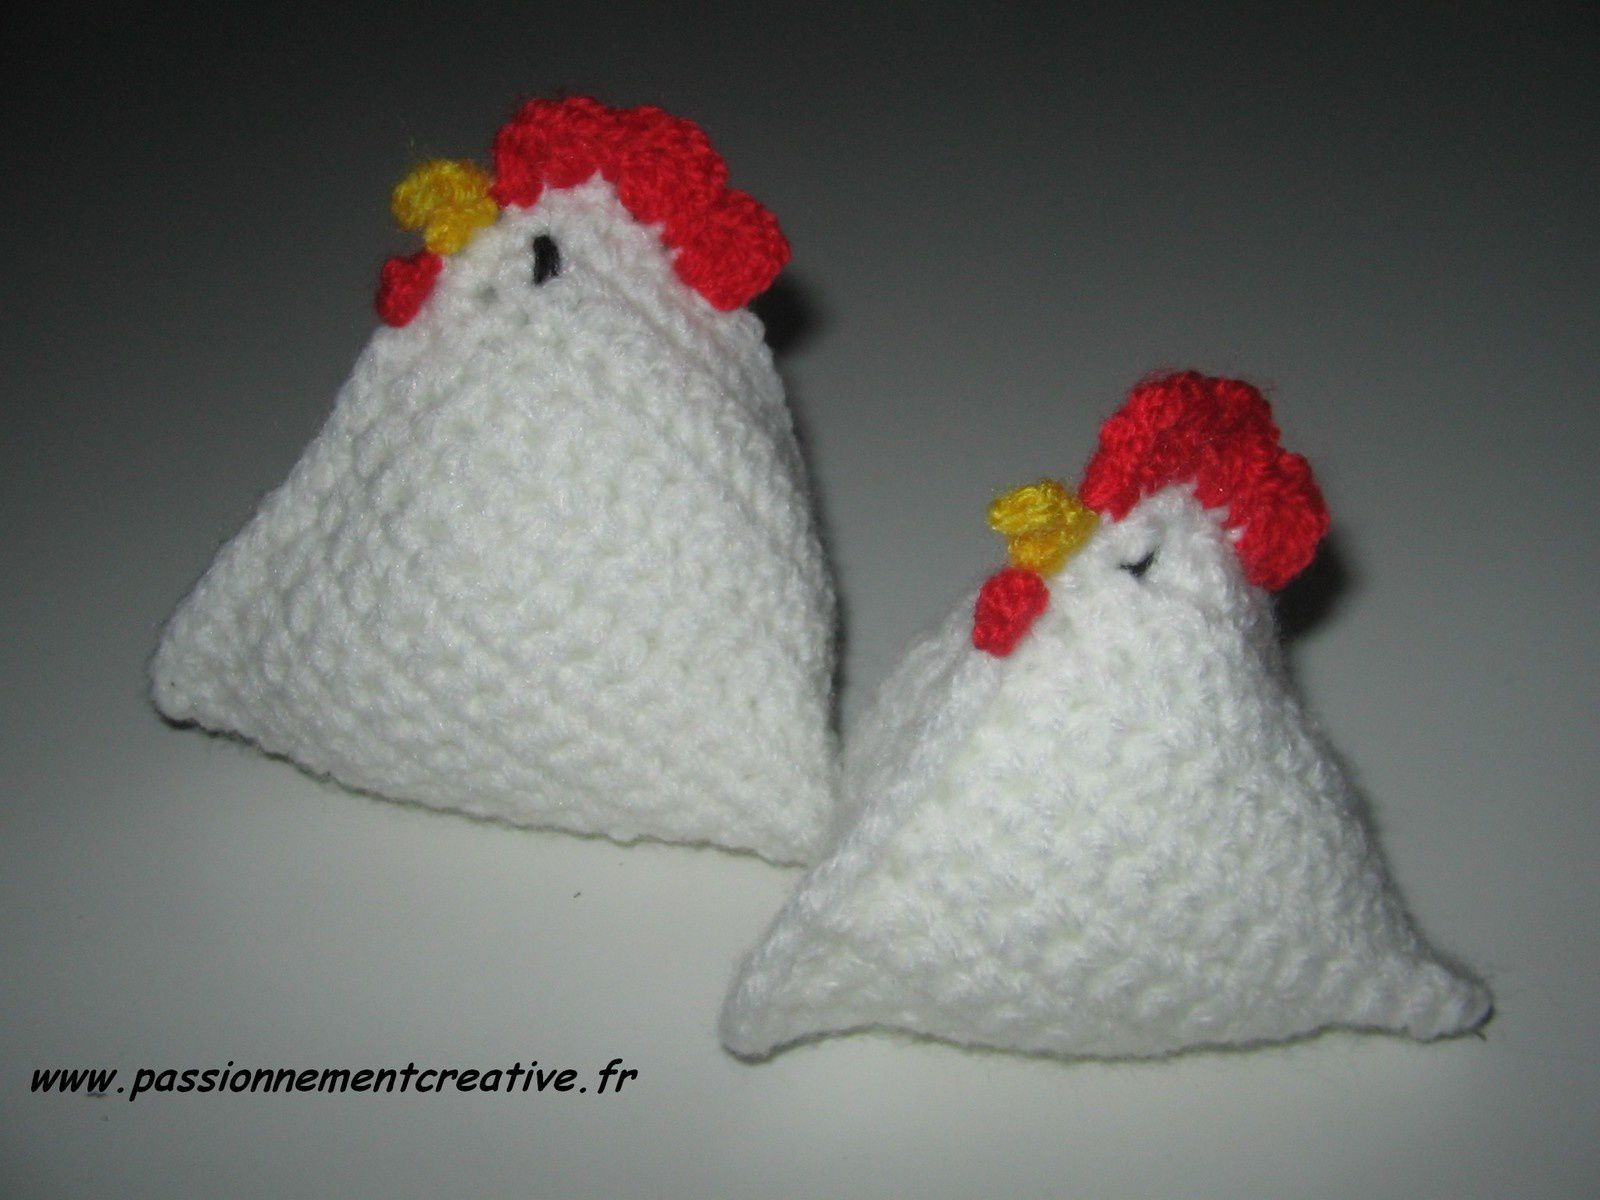 Poules berlingot passionnement cr ative for Poules decoration